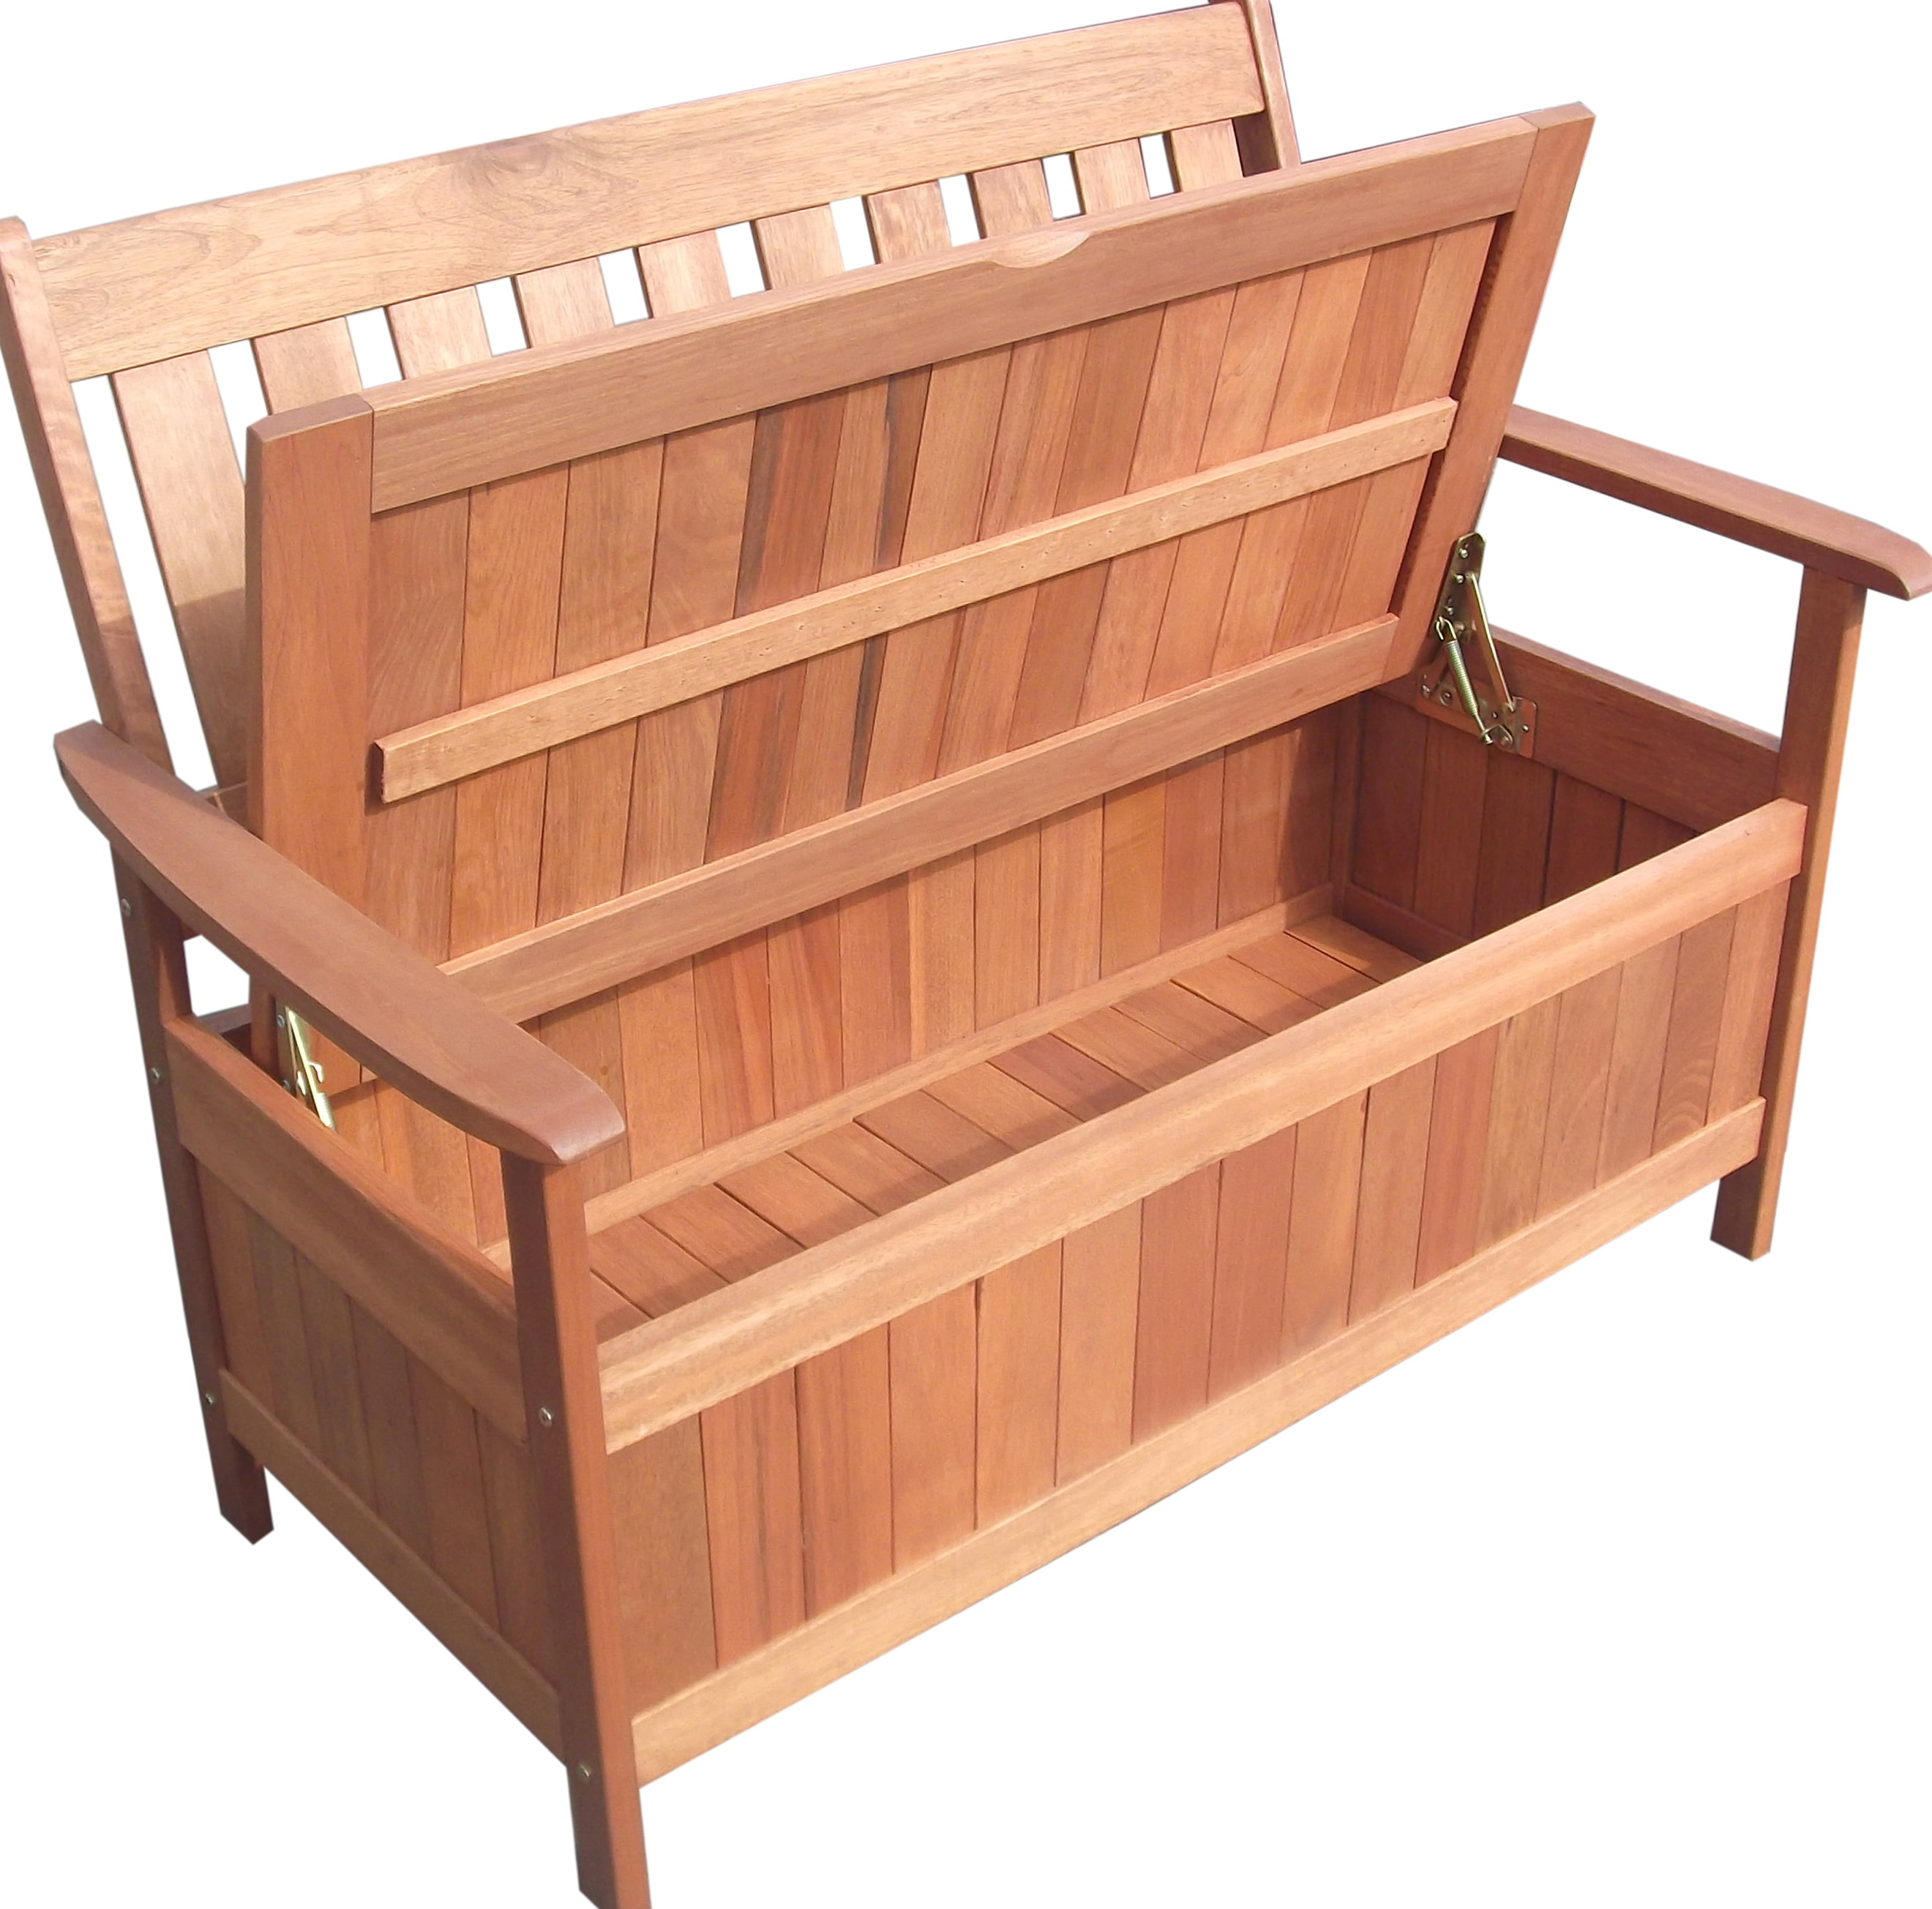 of rubbermaid images chest depot storage smsender tulum unique deck home box chic outdoor co patio bench